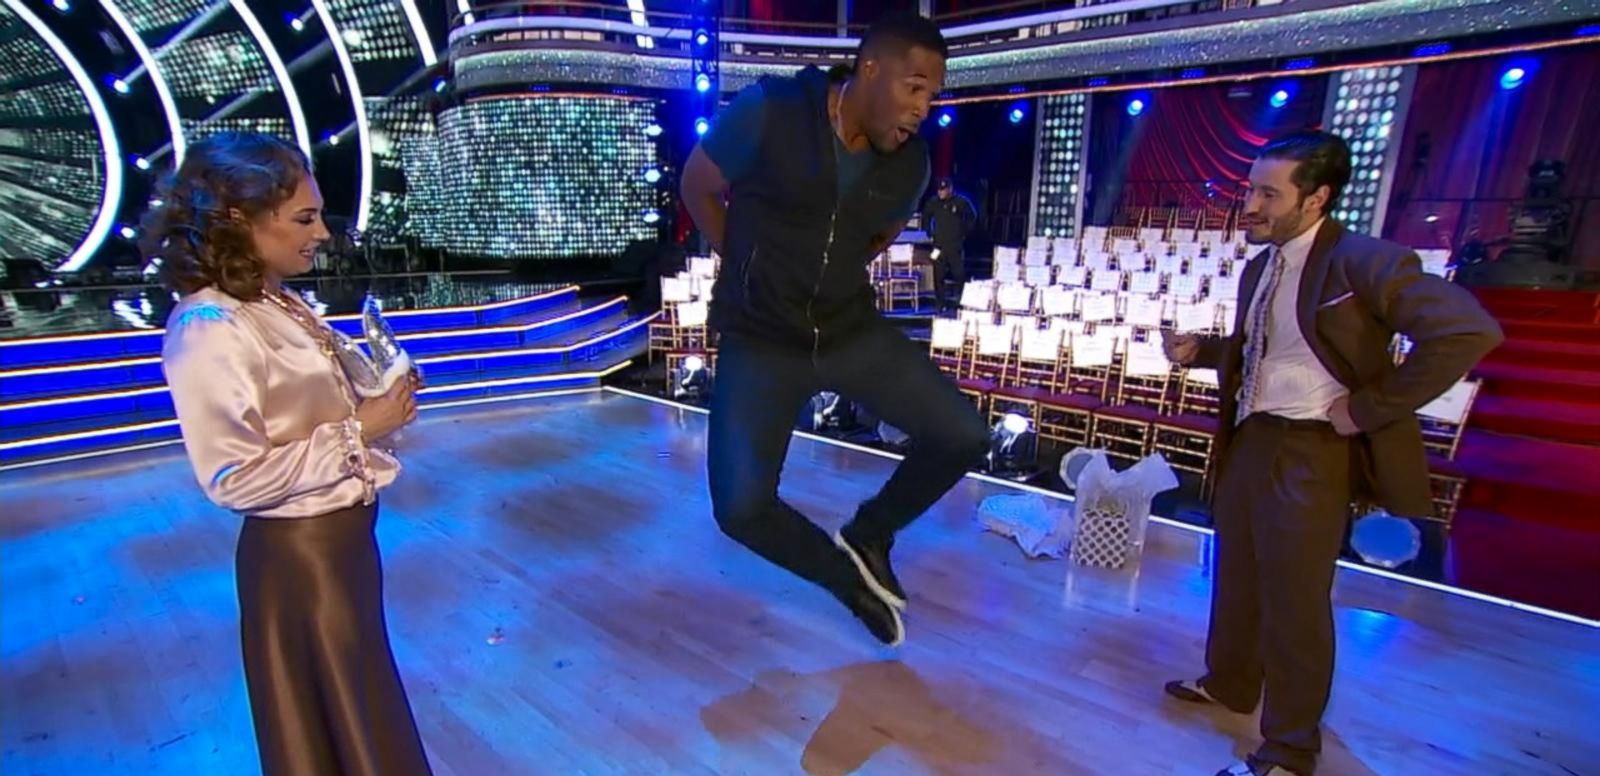 VIDEO: 'Dancing with the Stars': Behind the Scenes